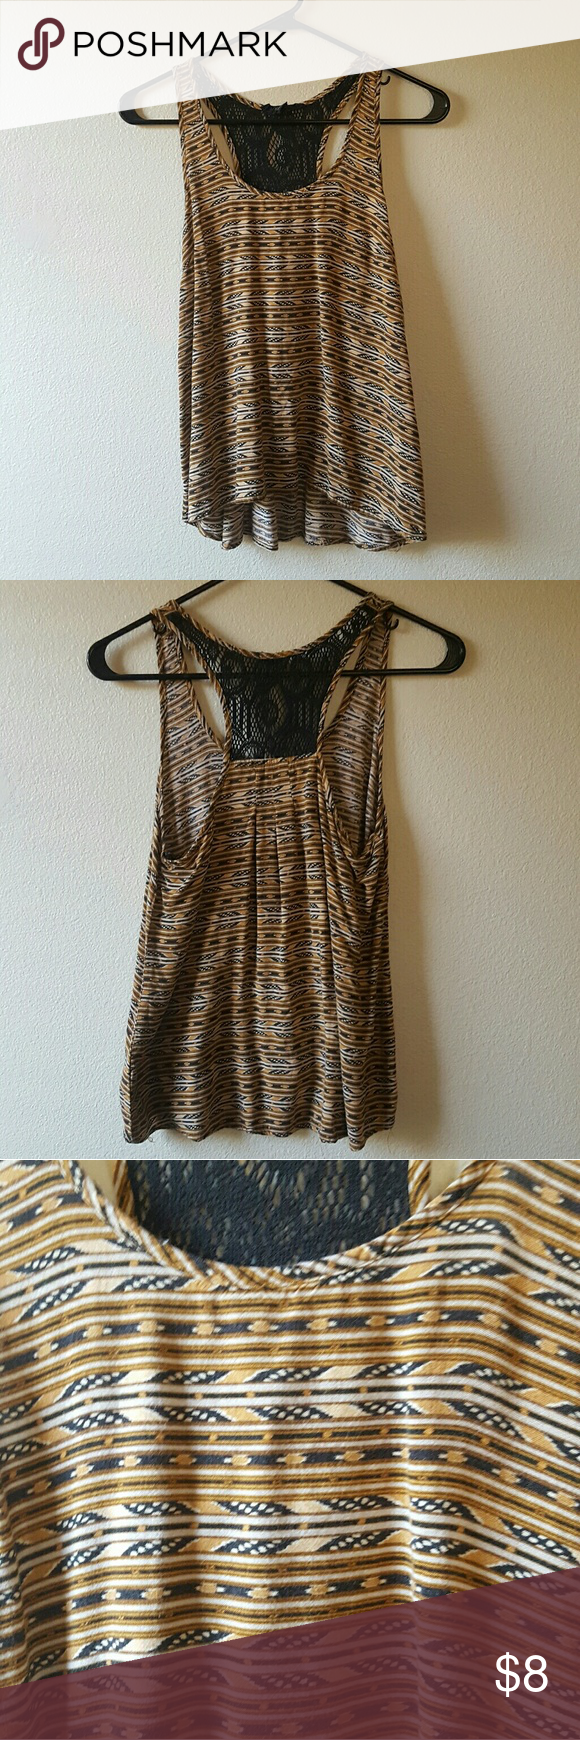 Tribal printed top. In good worn condition. Forever 21 Tops